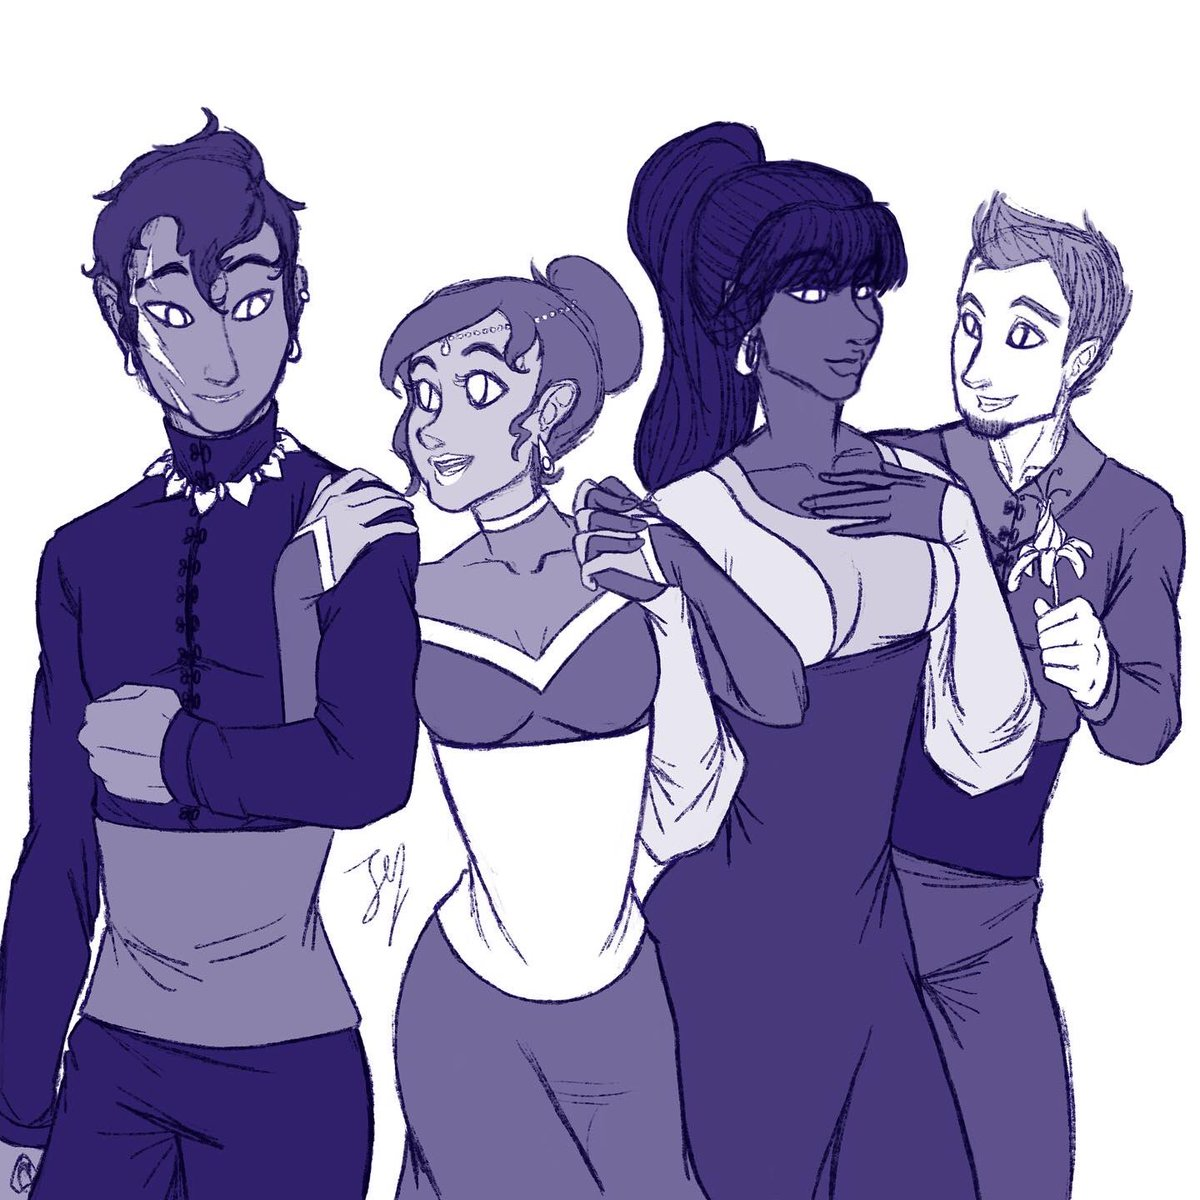 Happy new year. I meant to have this done earlier in December, but oh well. I'll finish it with lineart and proper color eventually. Left to right: Oreku, Veroni, Naomi, and Reese.  #happynewyear2020 #sketch #digitalart #myoriginalcharacters #myocs #ocwinterball #wipwednesdaypic.twitter.com/3gS1jNSbRn